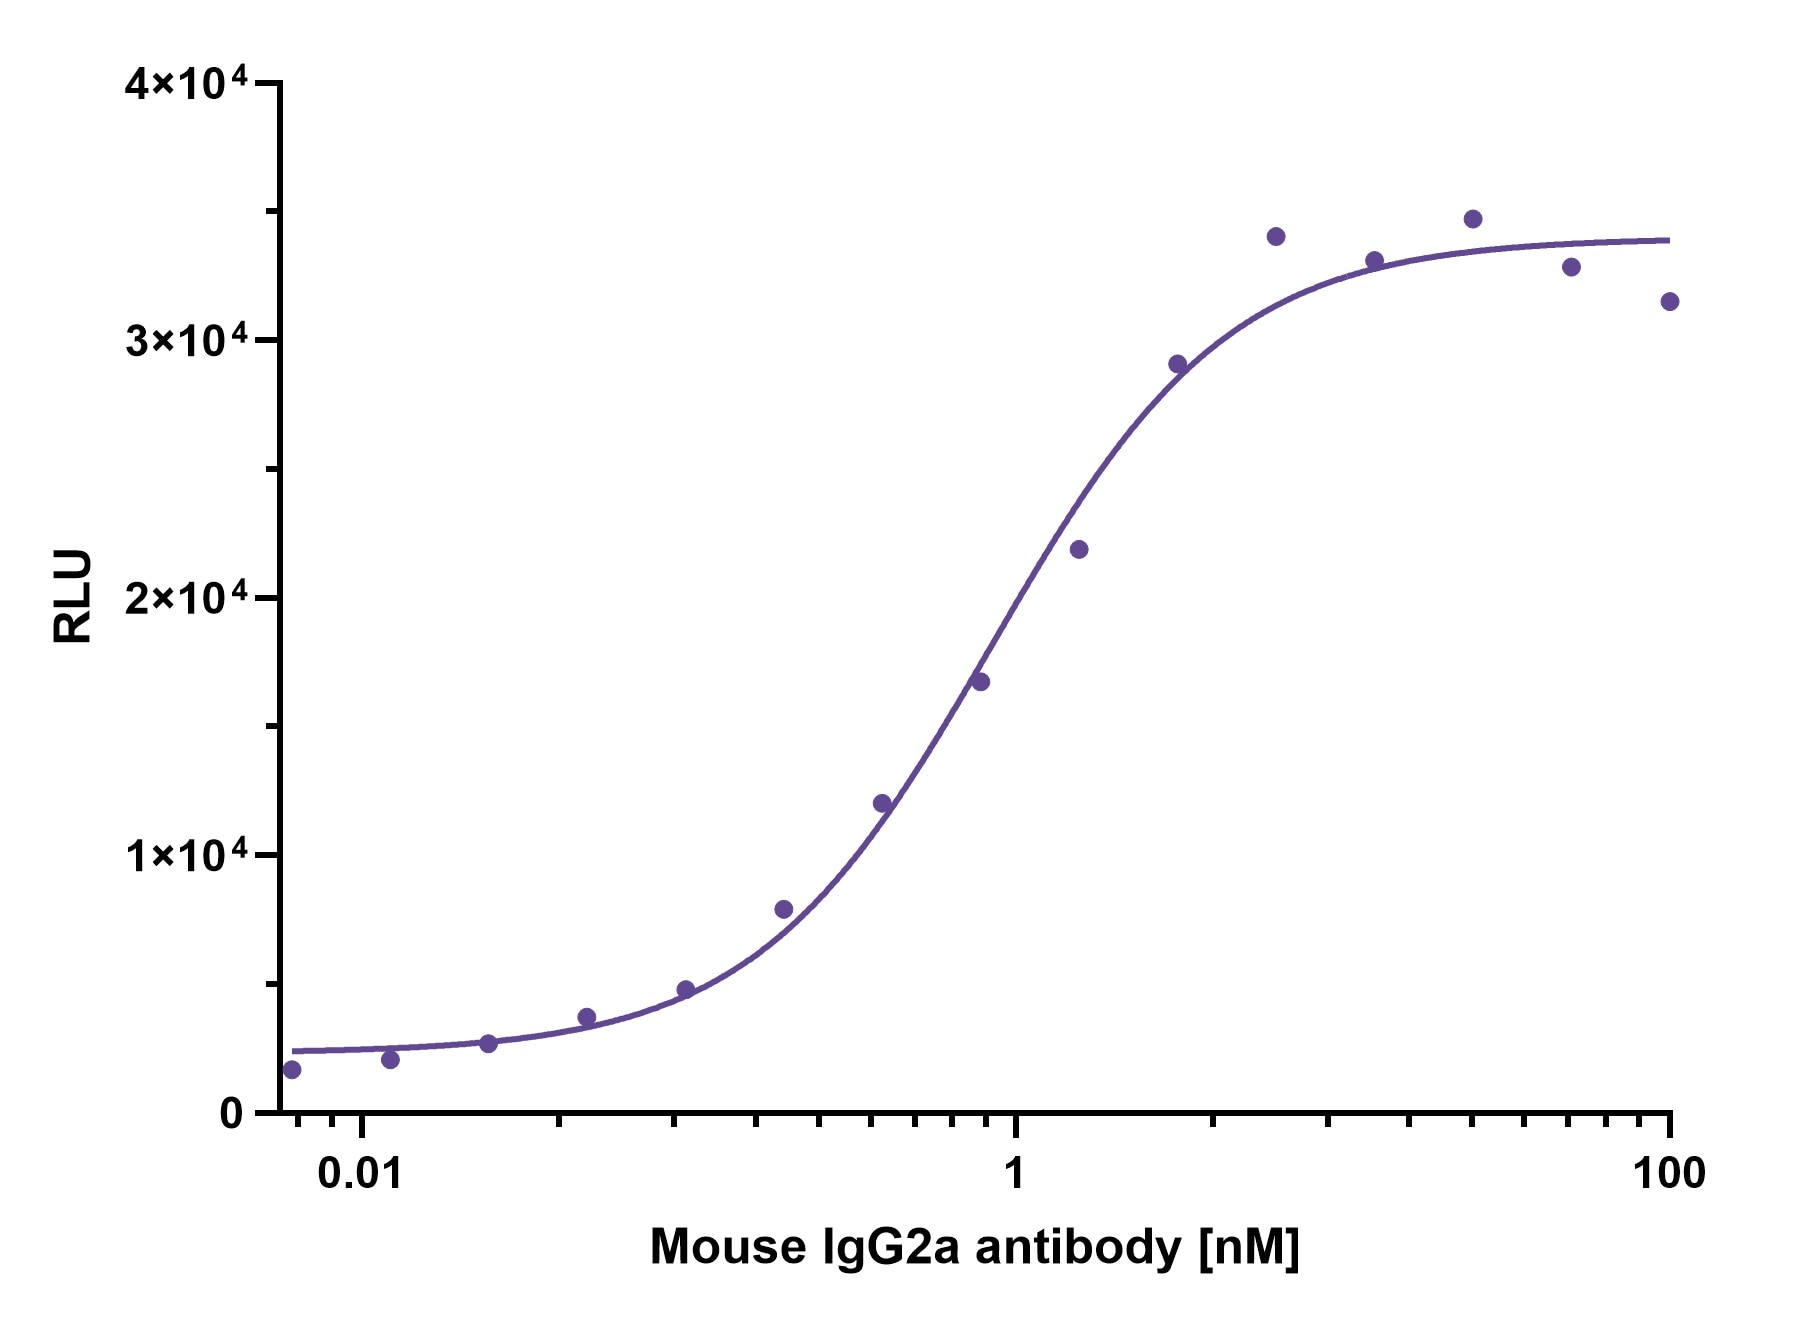 ELISA capture of mouse IgG2a antibody using Nano-CaptureLigand mouse IgG2a, Fc-specific VHH, biotinylated. 50 nM Nano-CaptureLigand mouse IgG2a, Fc-specific VHH, biotinylated was used for coating on an avidin-coated MaxiSorp plate. Mouse IgG2a antibody was titrated in a 1:2 dilution series and detected with an alkaline phosphatase-conjugated detection antibody.